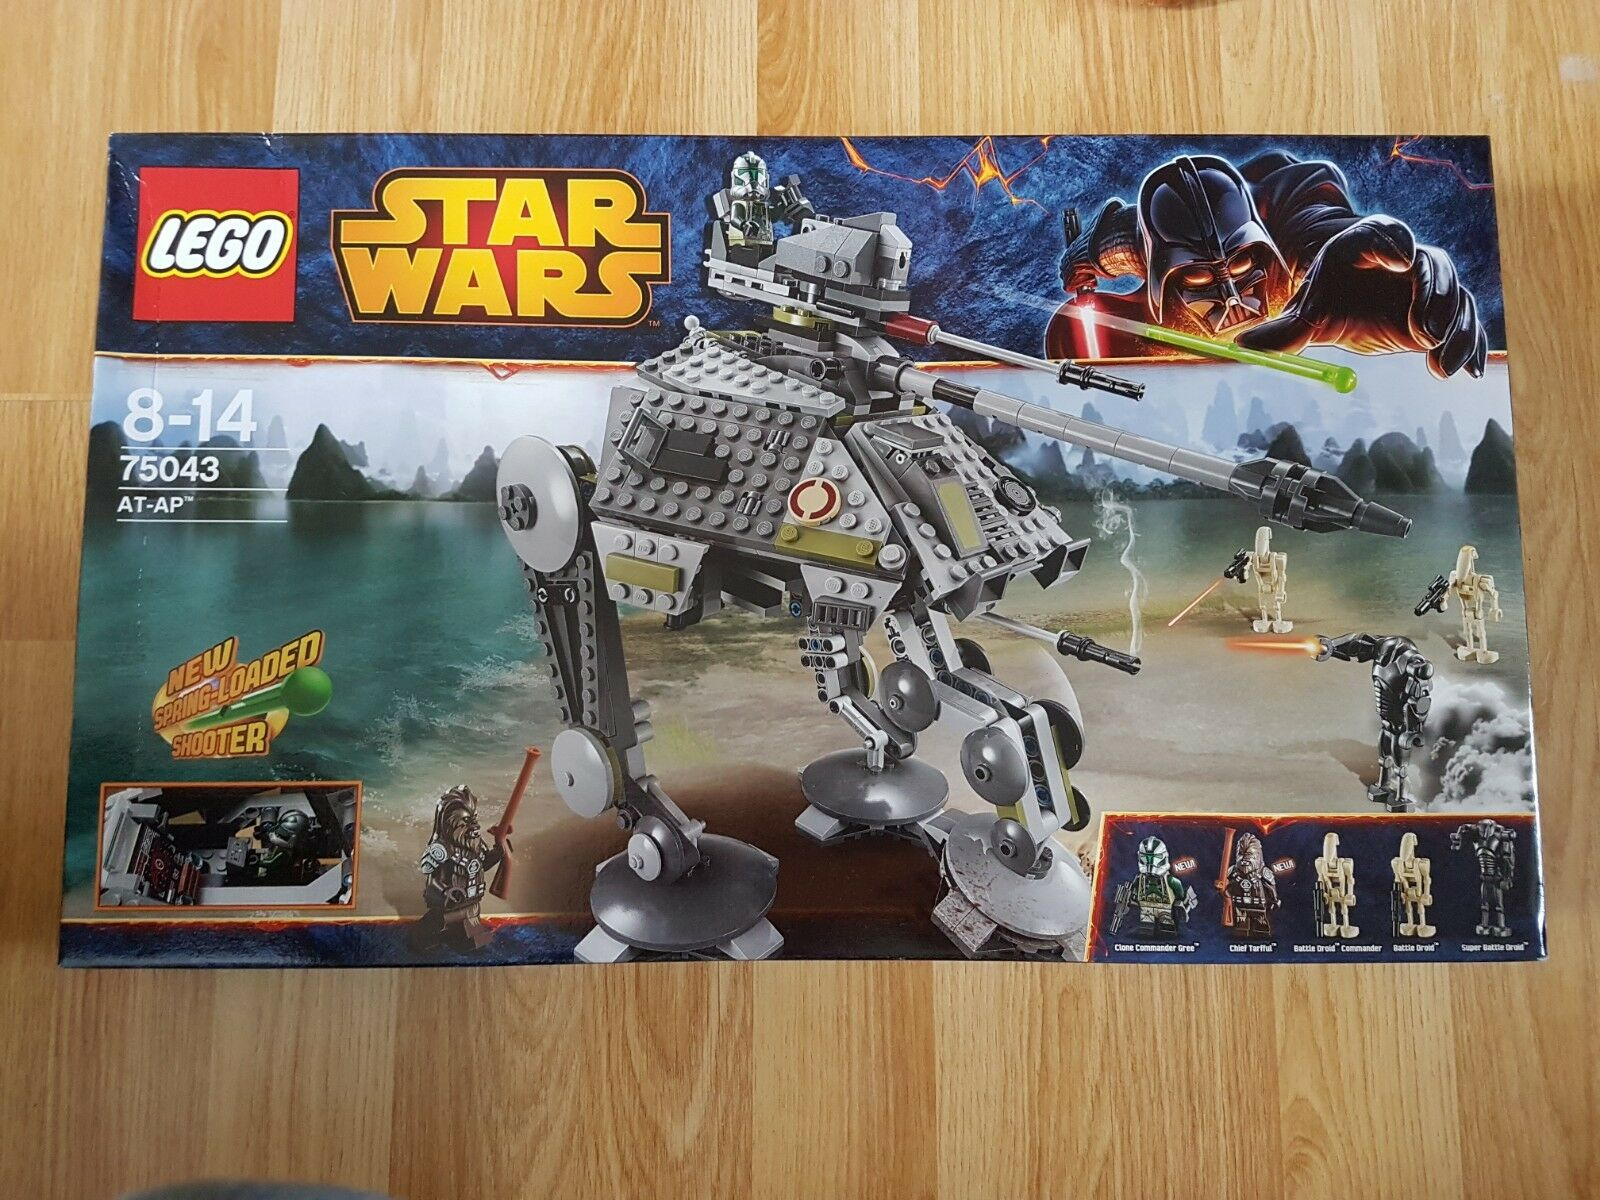 Lego Star Wars Retired Set 75043 - AT-AP [NEW]